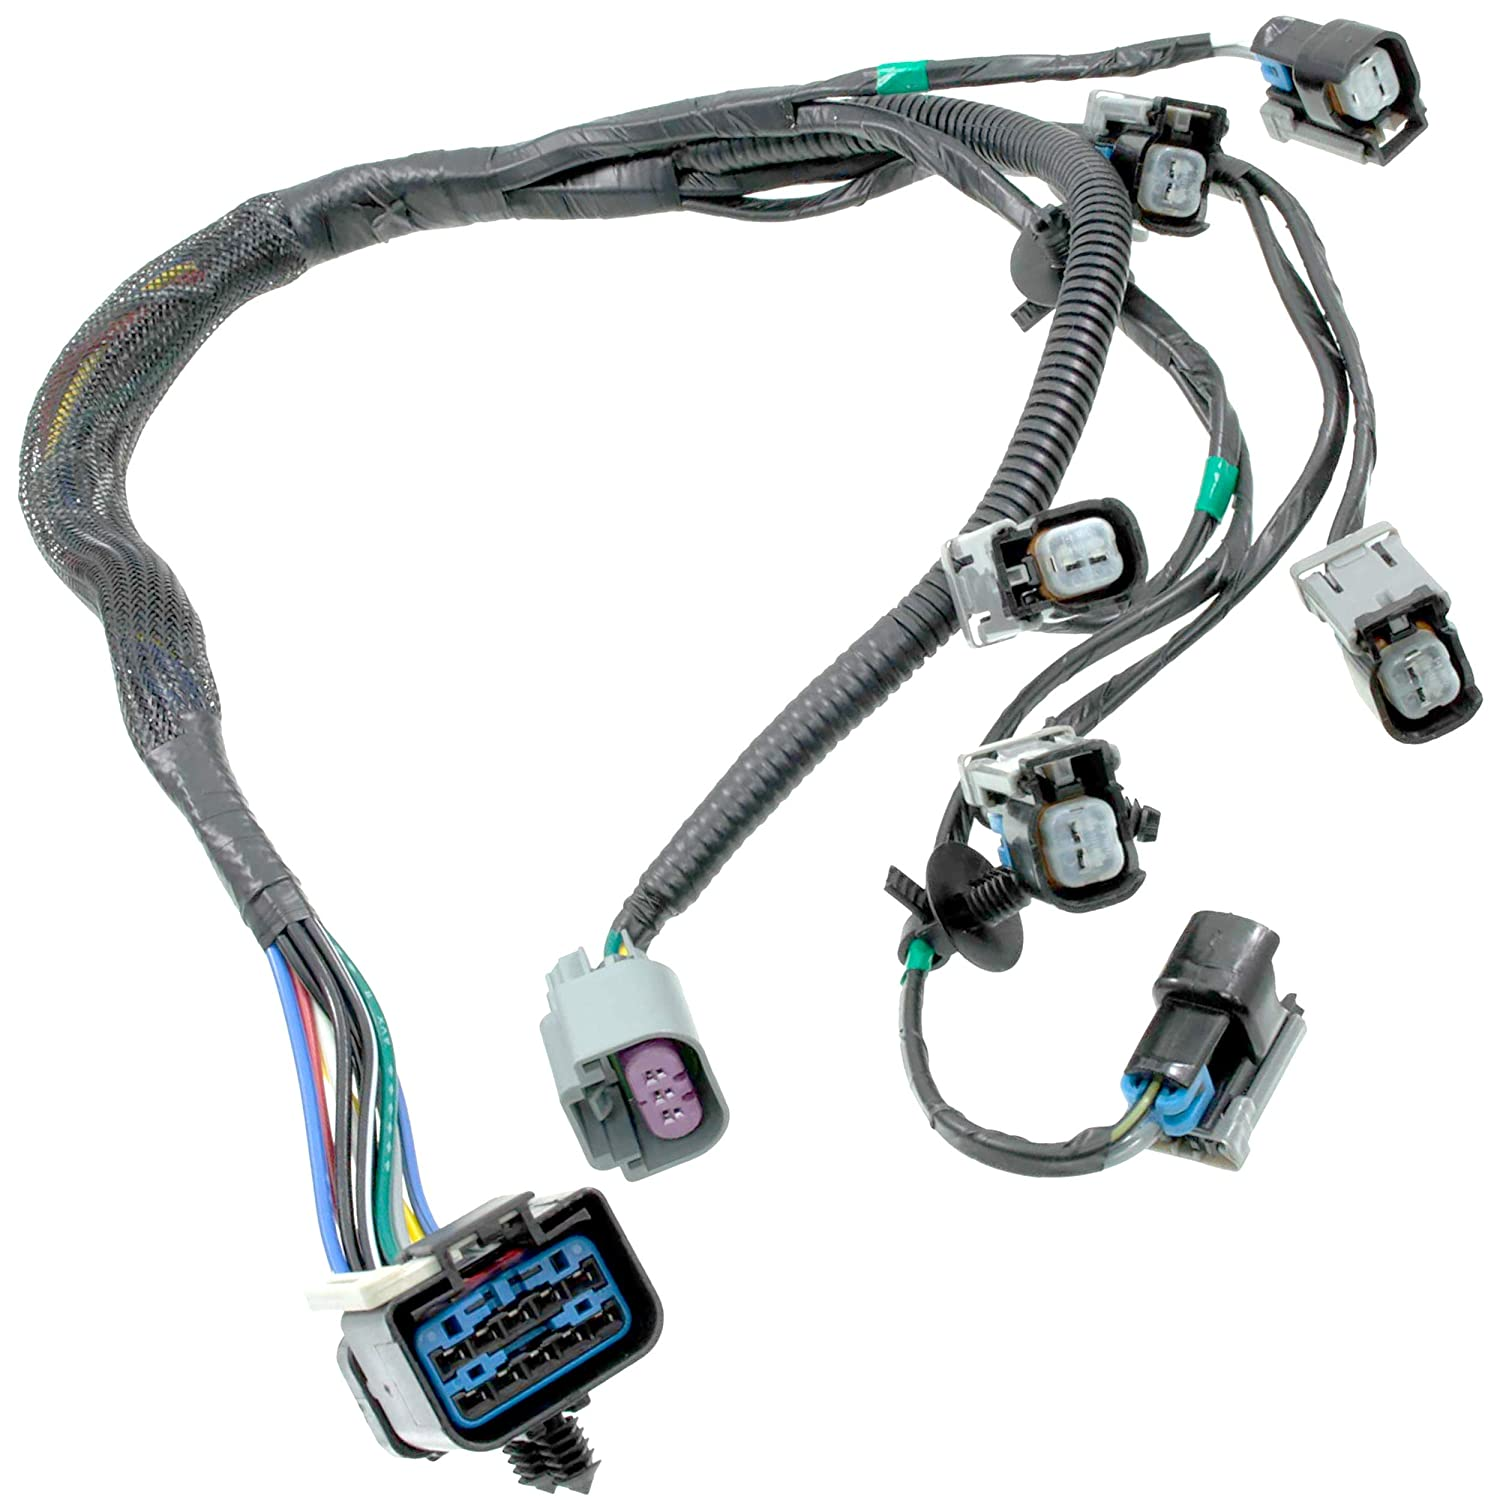 Apdty 022190 Fuel Rail Injector Wiring Pigtail 2006 Ford F350 6 0 Ficm Relay Location Connector Complete Harness Fits 2001 2003 V6 33l Or 38l Grand Voyager Town Country